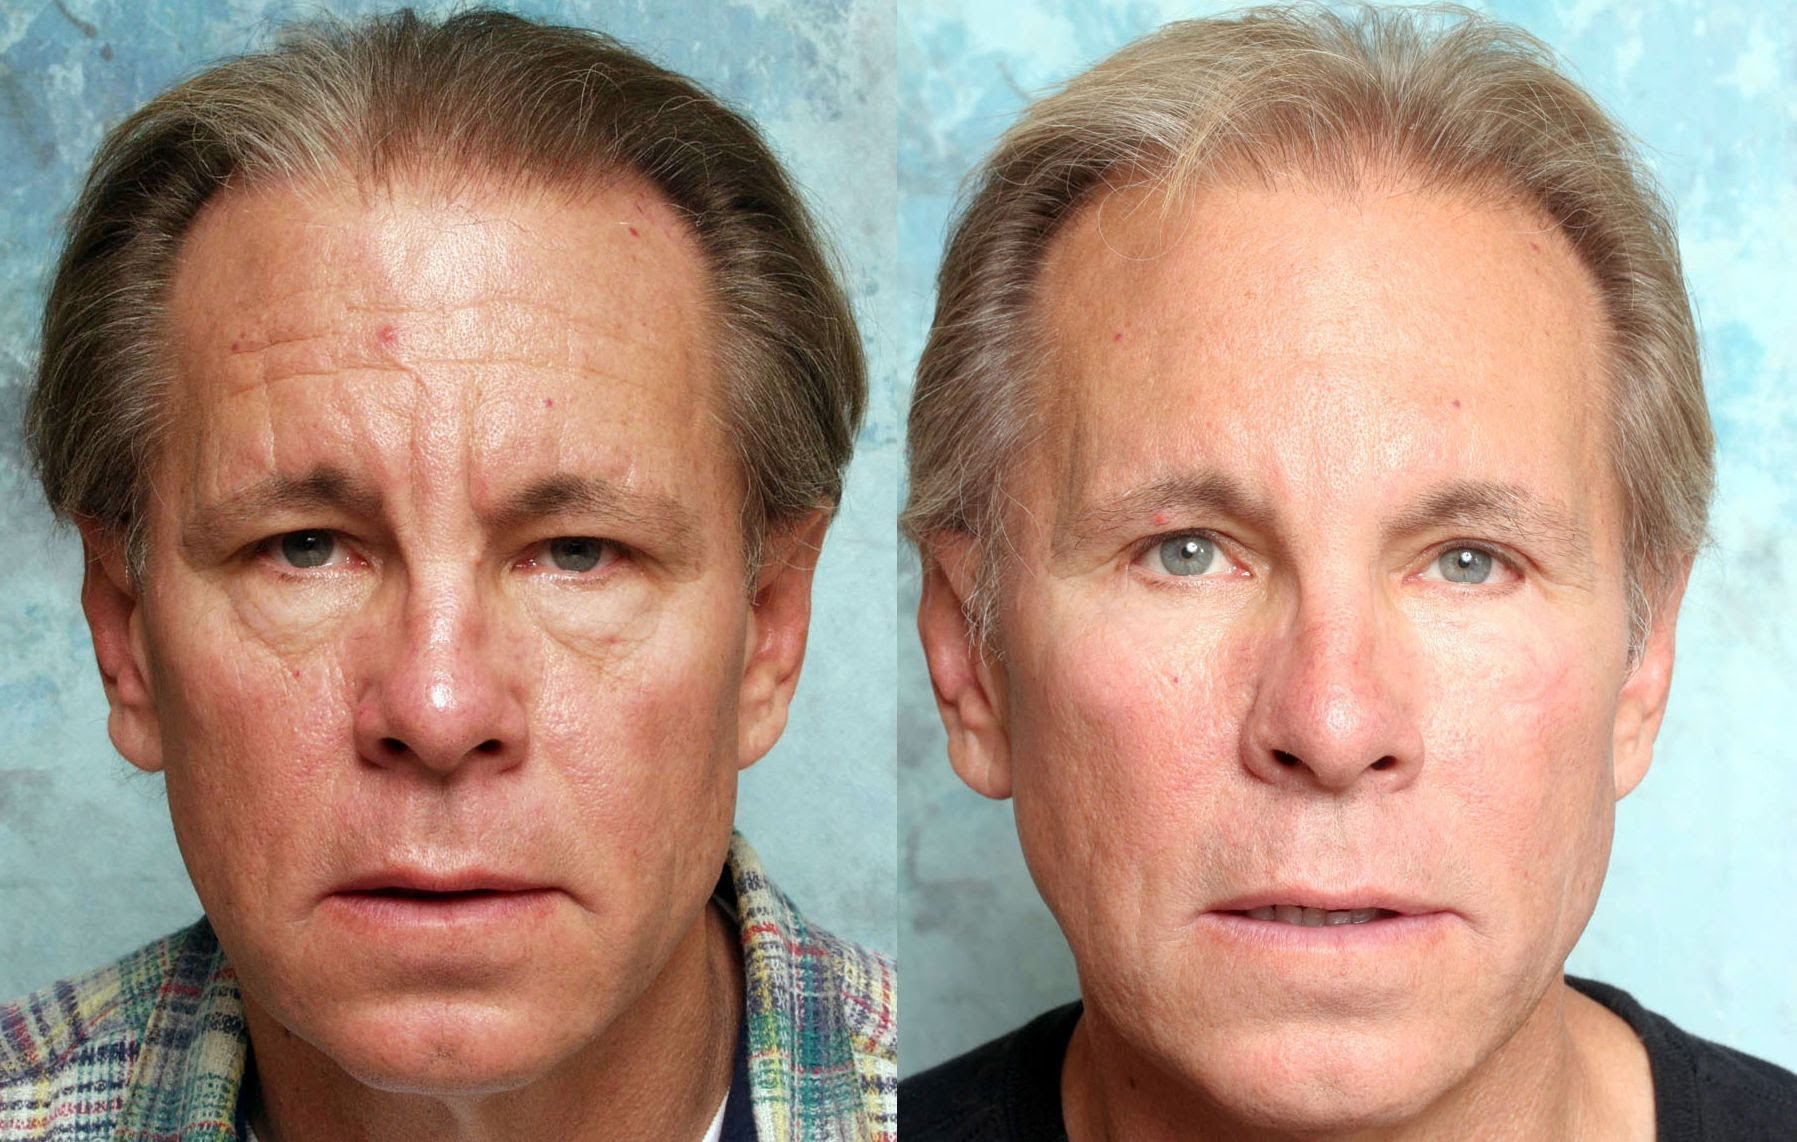 What are fairness tips for men to get glowing face? 3